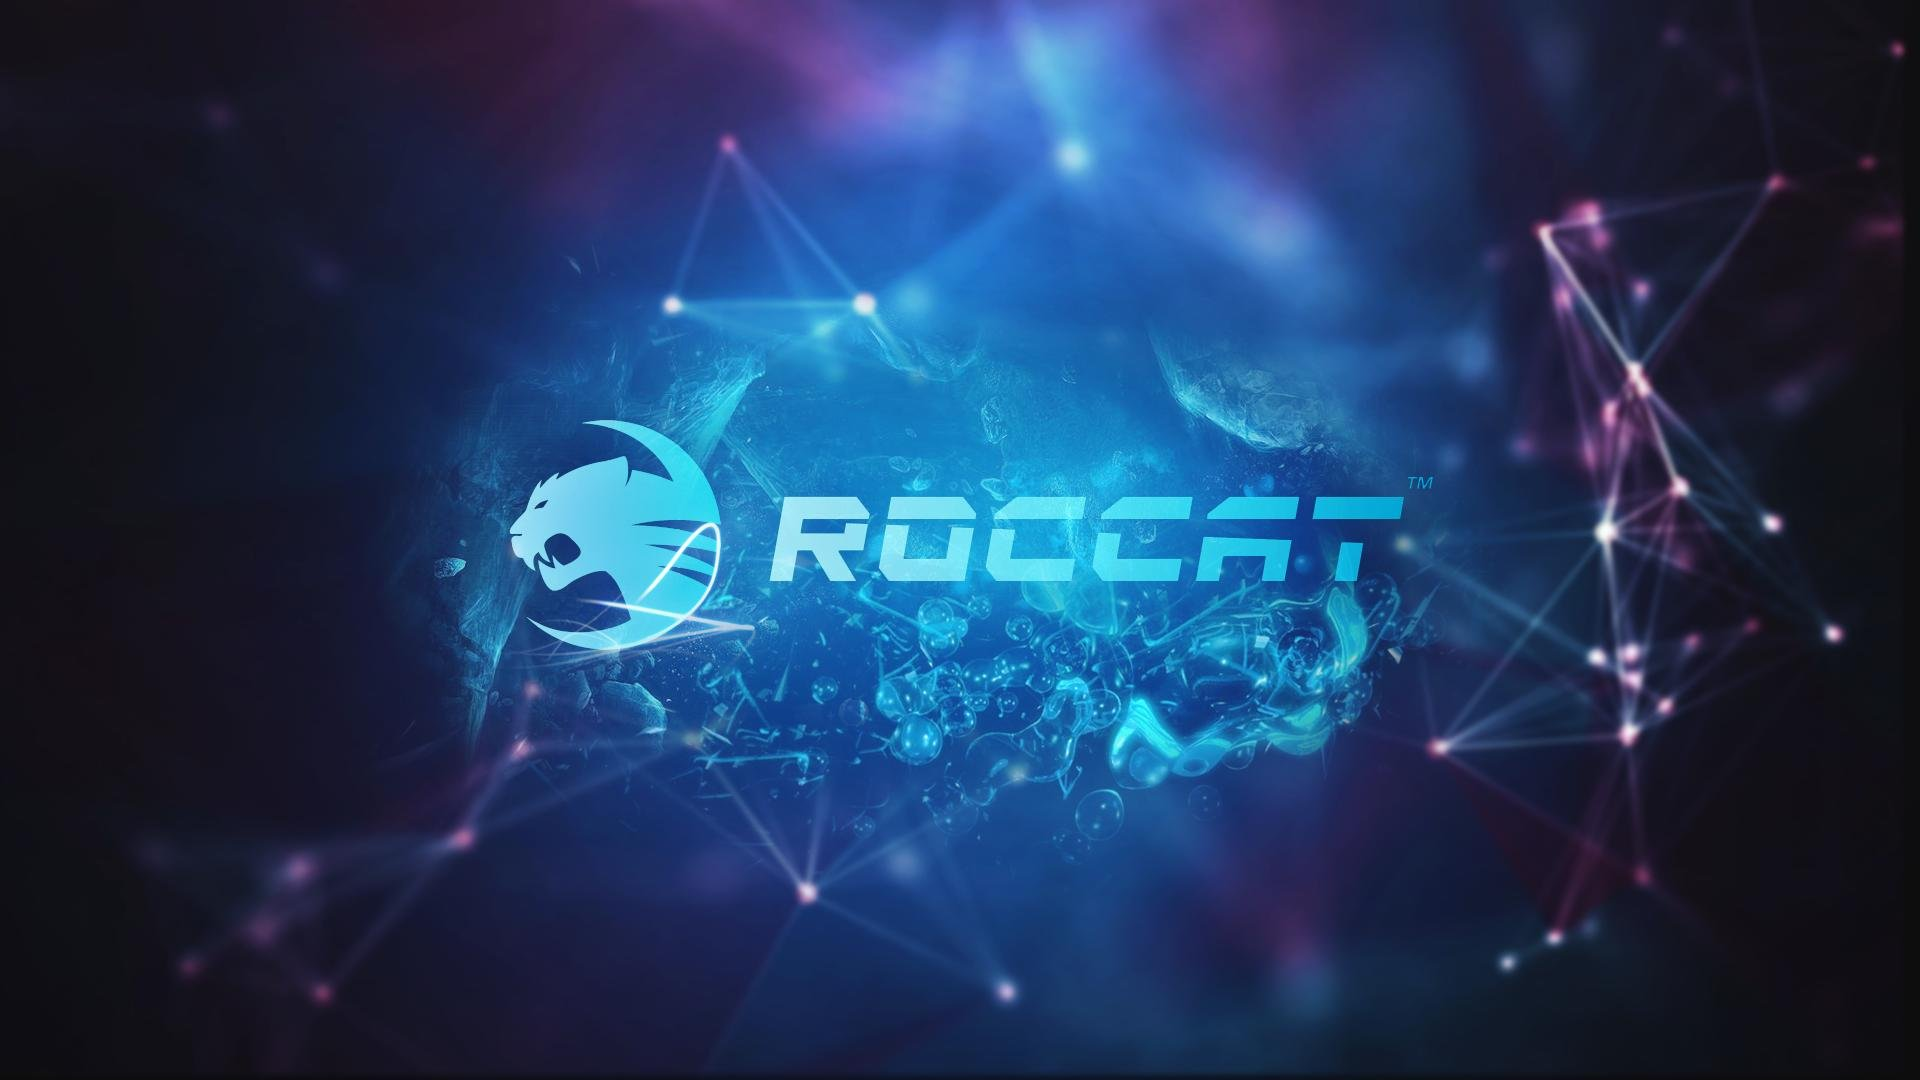 ROCCAT GAMING computer gd wallpaper 1920x1080 401561 WallpaperUP 1920x1080